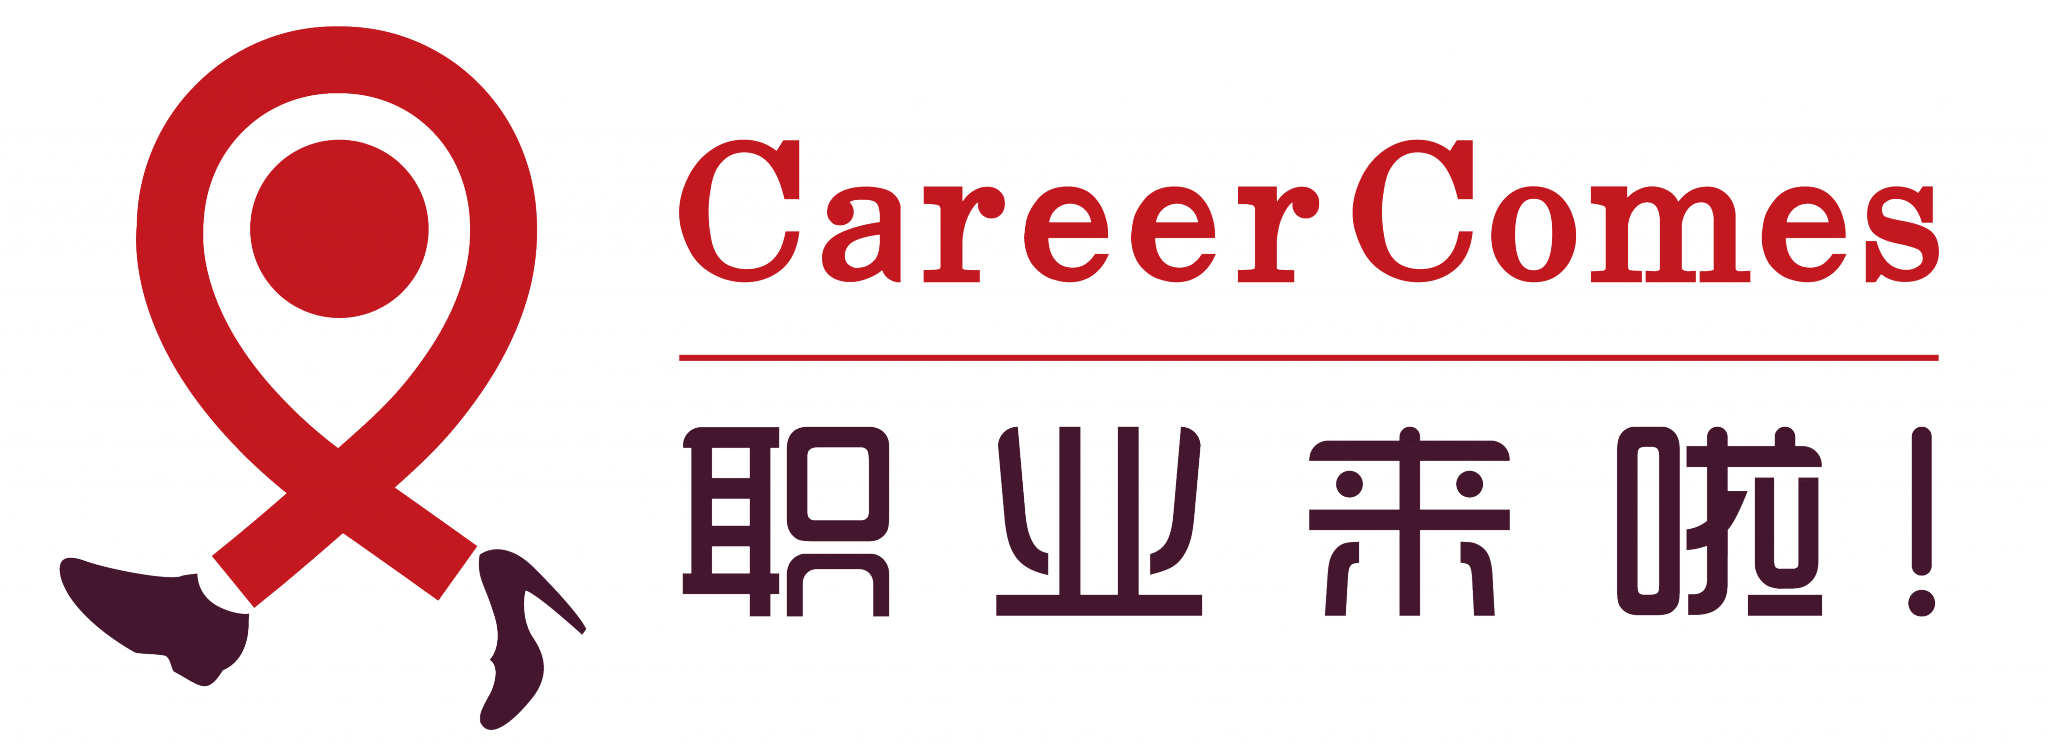 CareerComes Logo